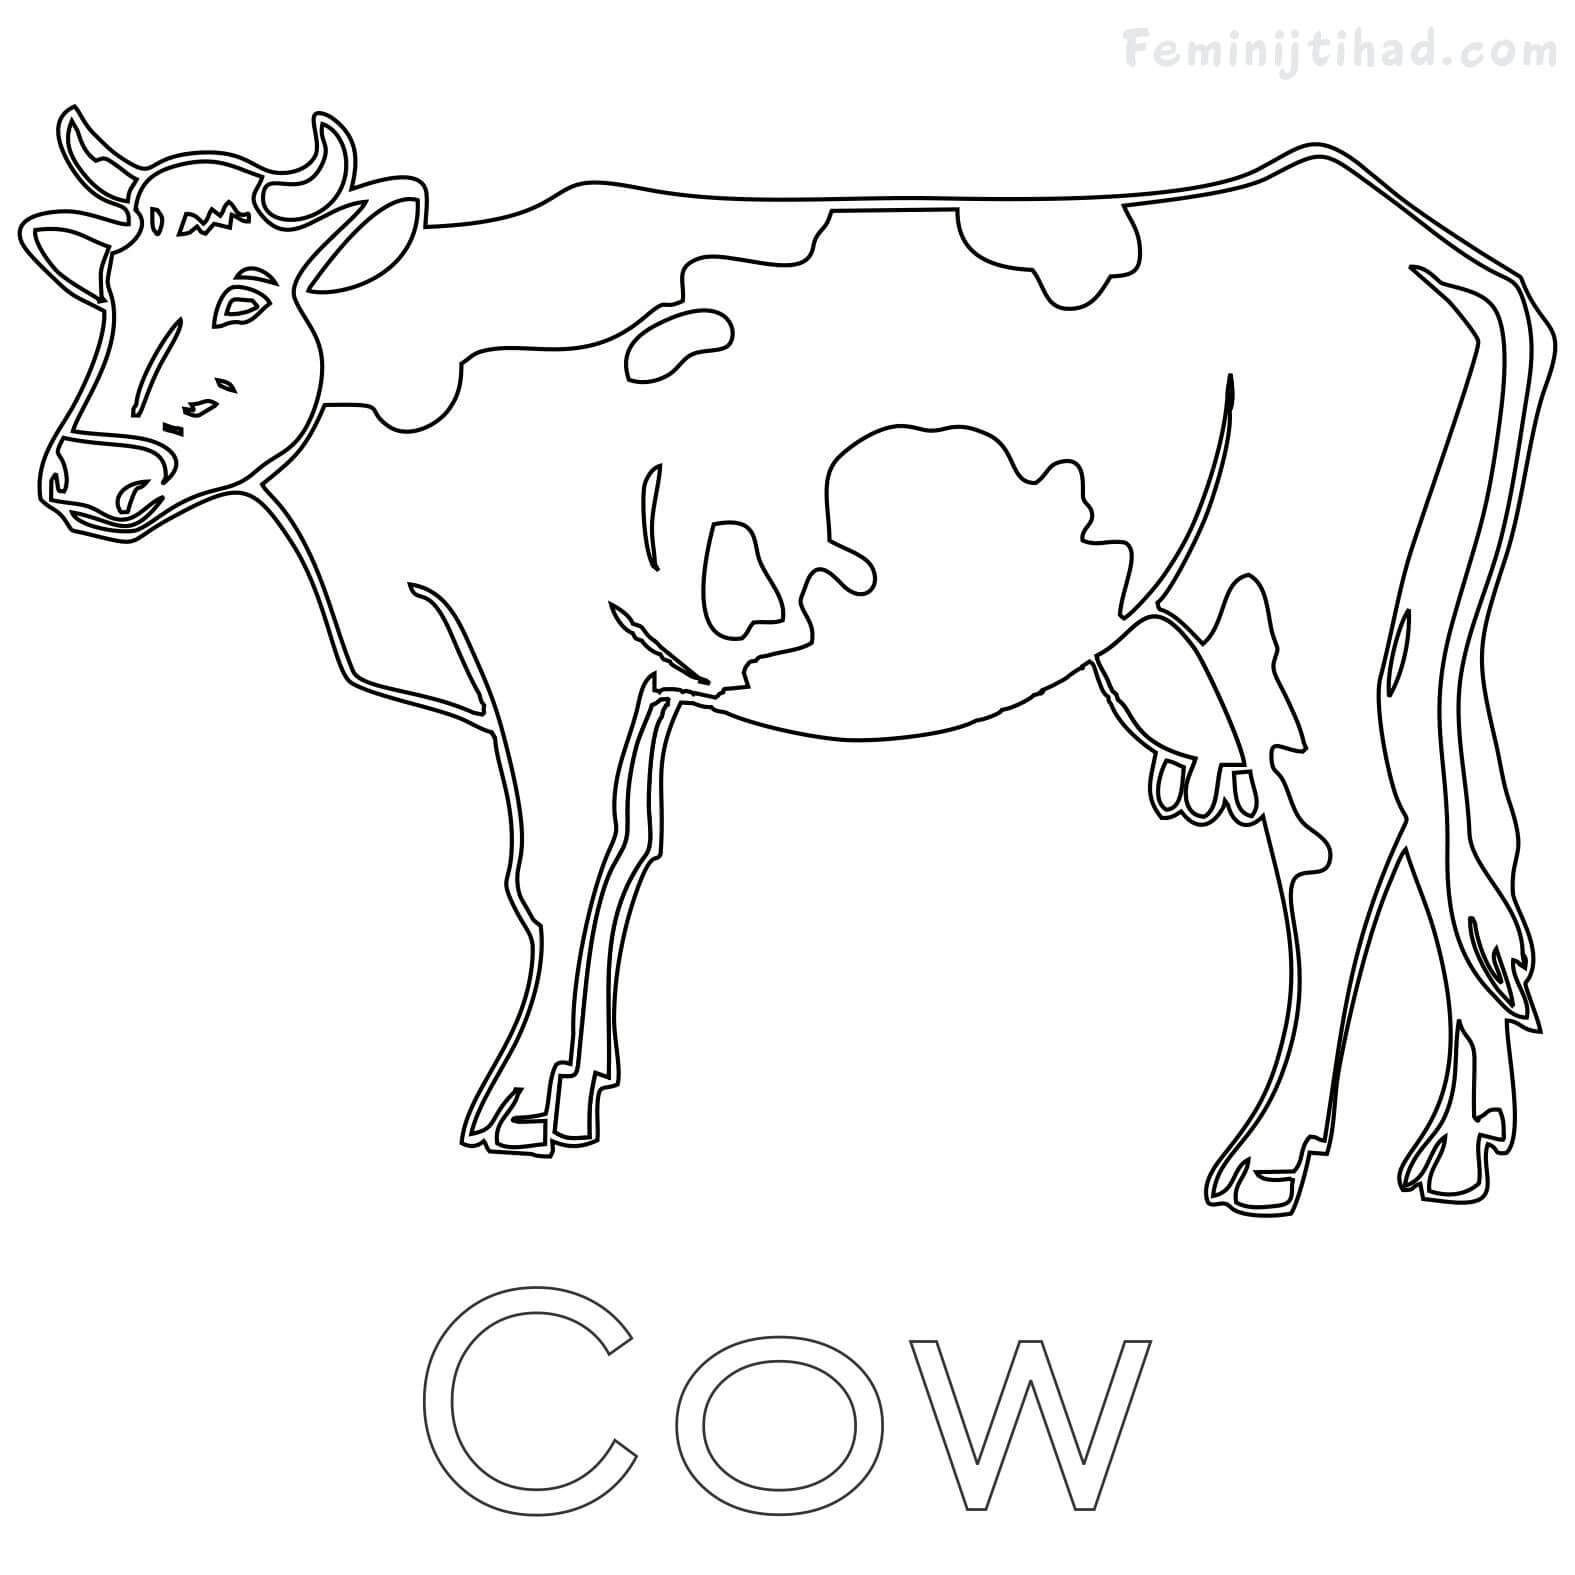 1575x1575 Cow Coloring Pages Free To Print Coloring Pages For Kids